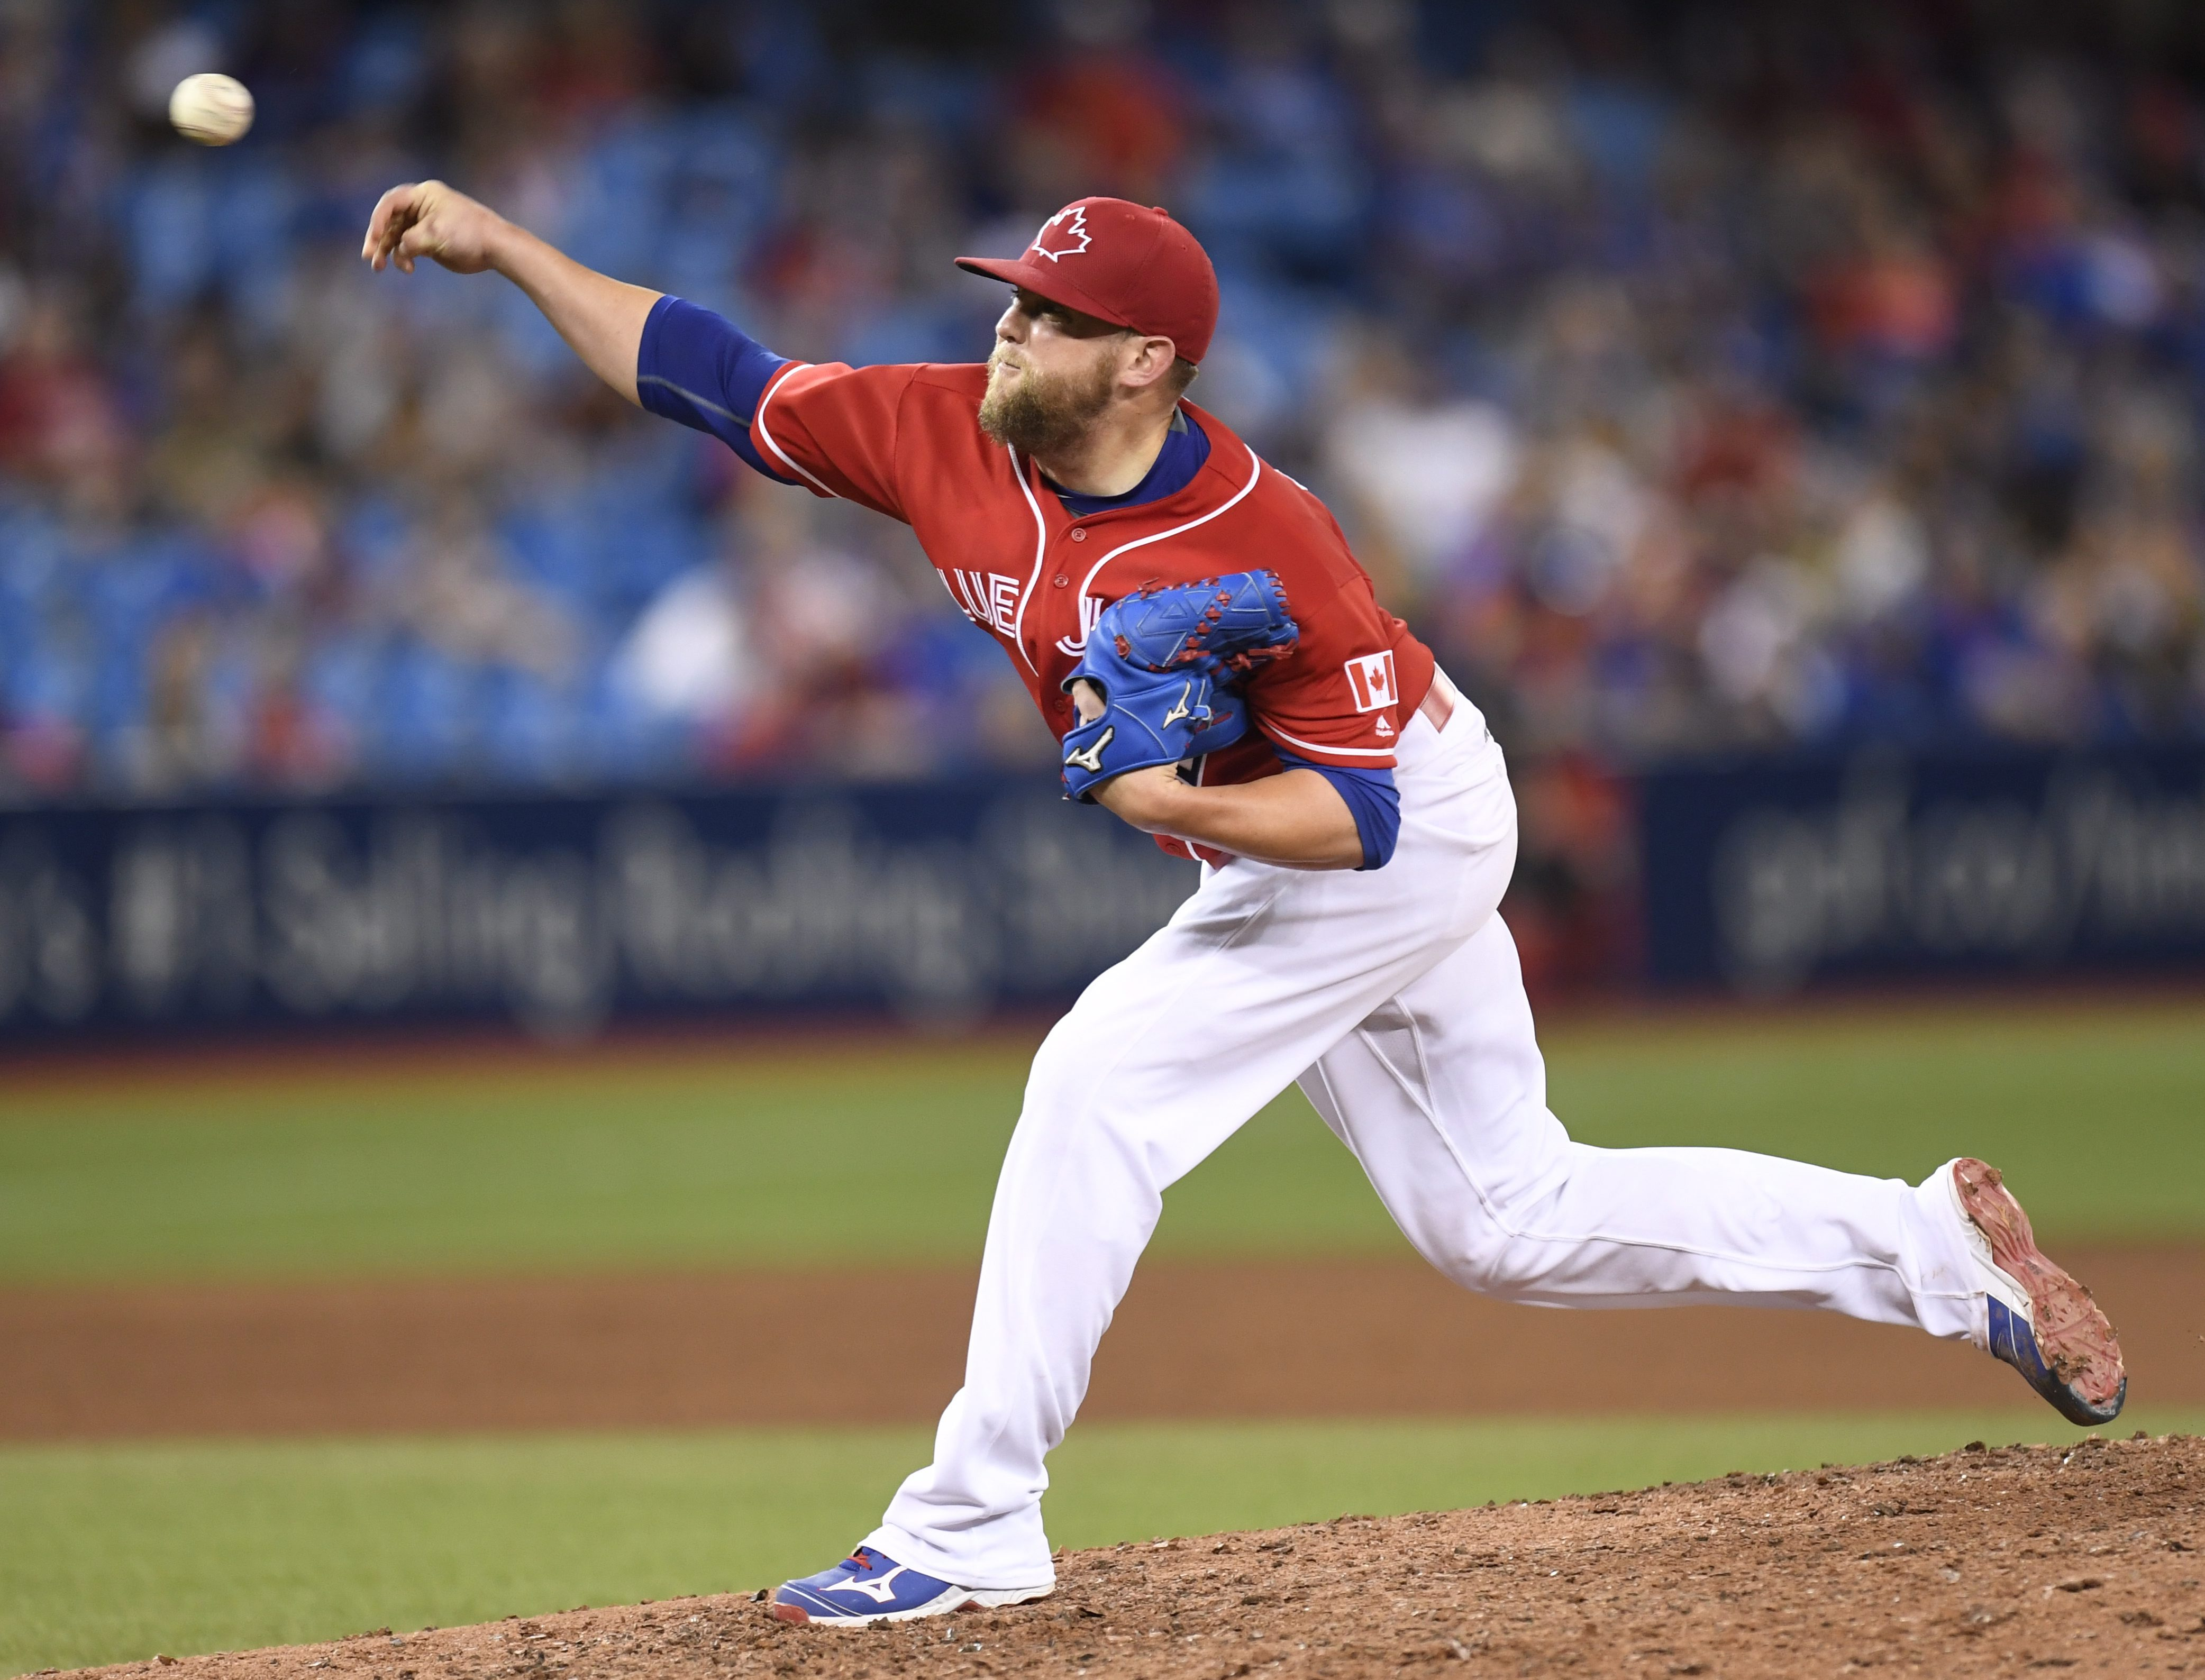 Toronto Blue Jays pitcher Drew Storen pitches against the Cleveland Indians during 15th inning of a baseball game in Toronto, Friday, July 1, 2016. (Frank Gunn/The Canadian Press via AP)